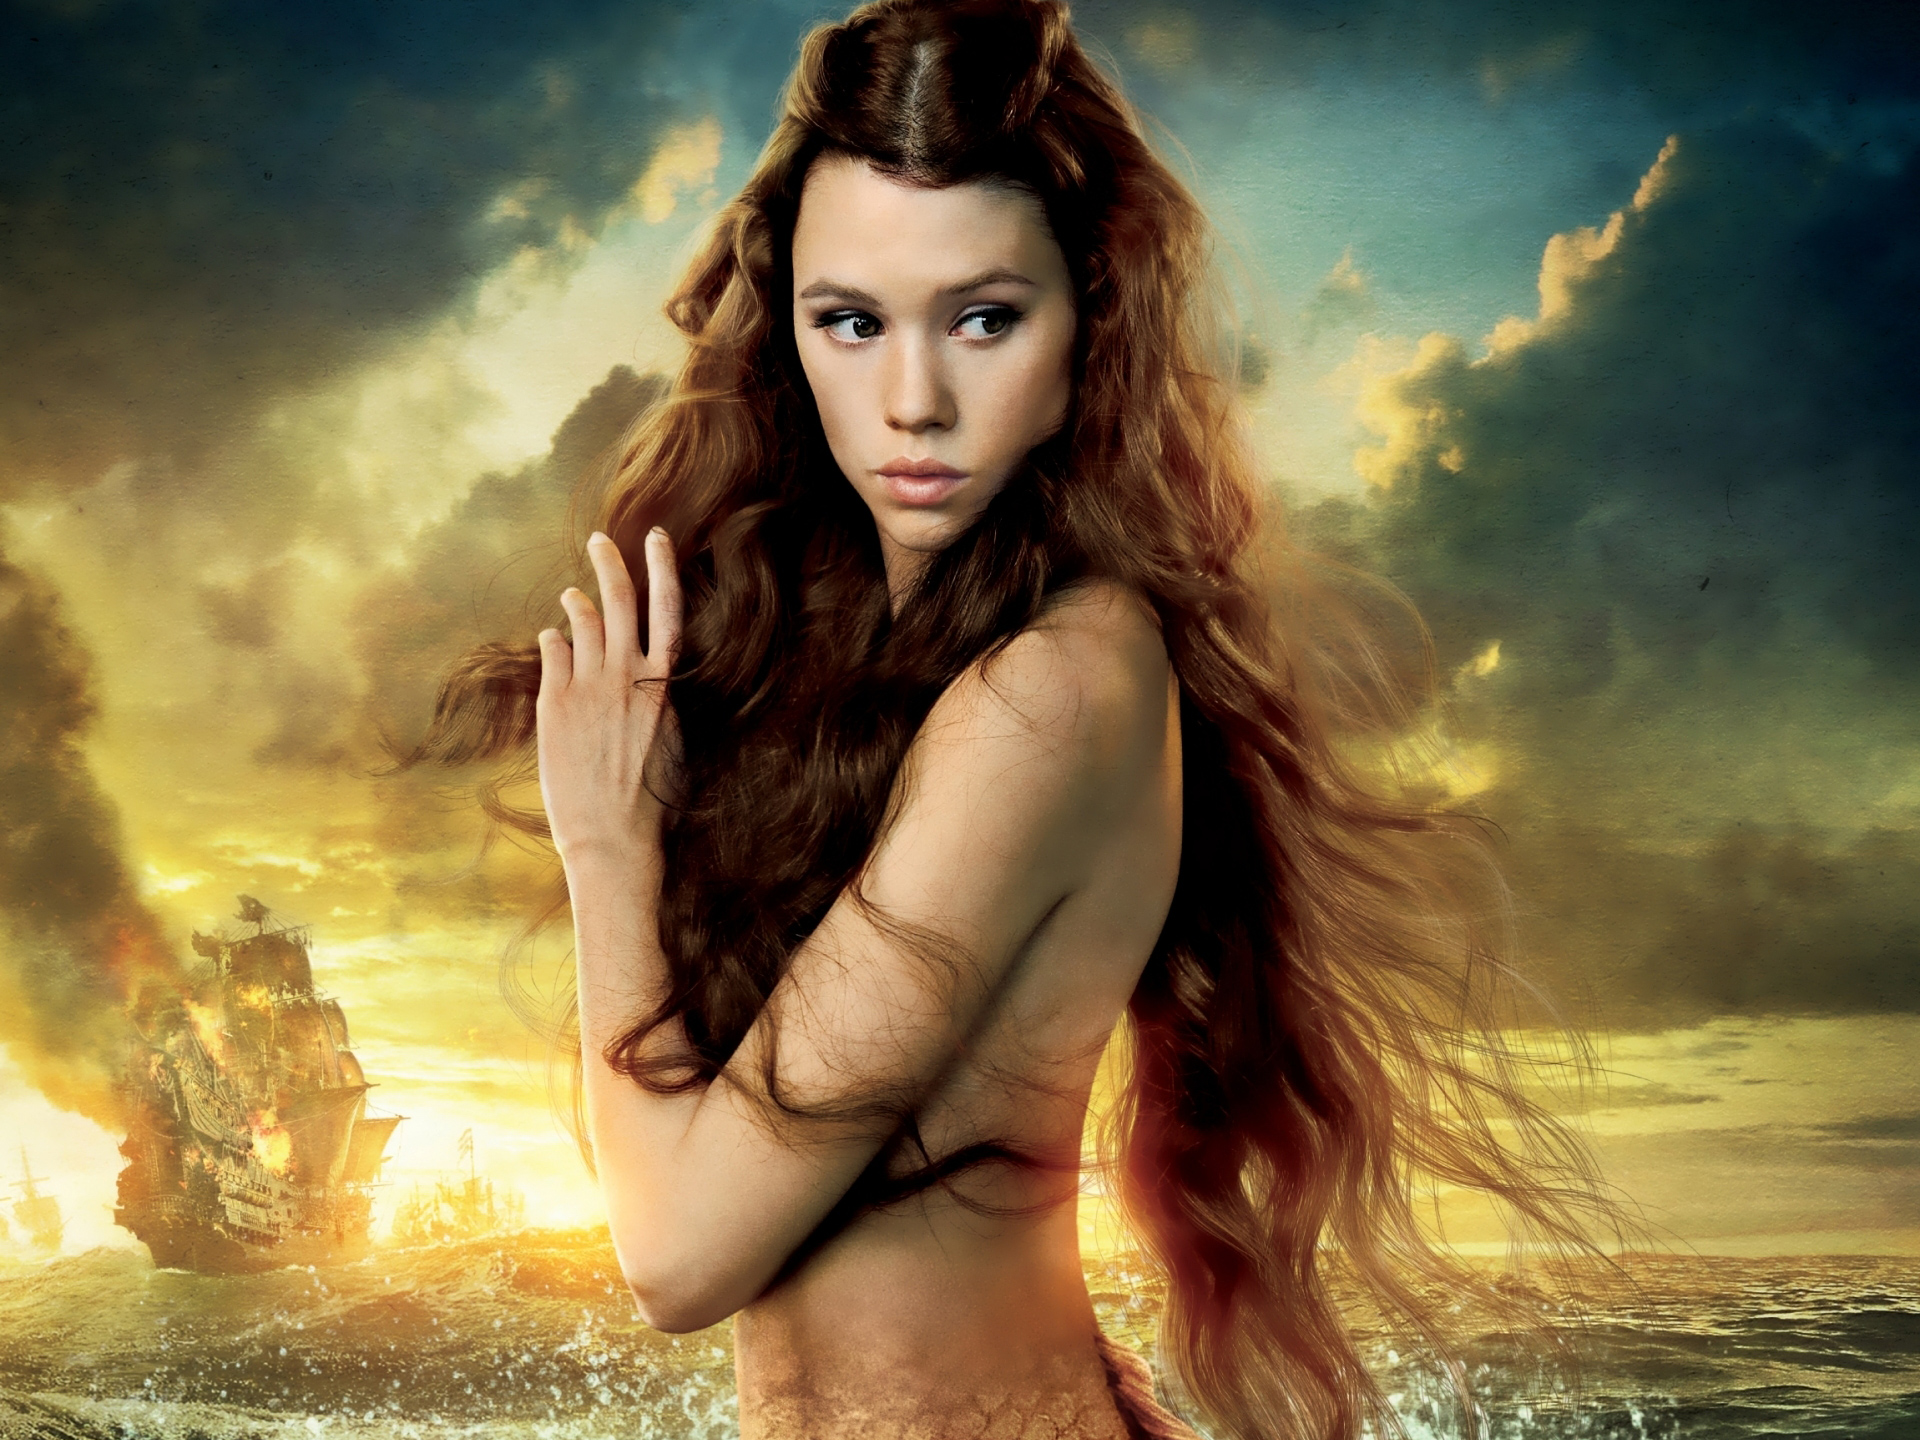 Syrena in Pirates of the Caribbean On Stranger Tides wallpaper